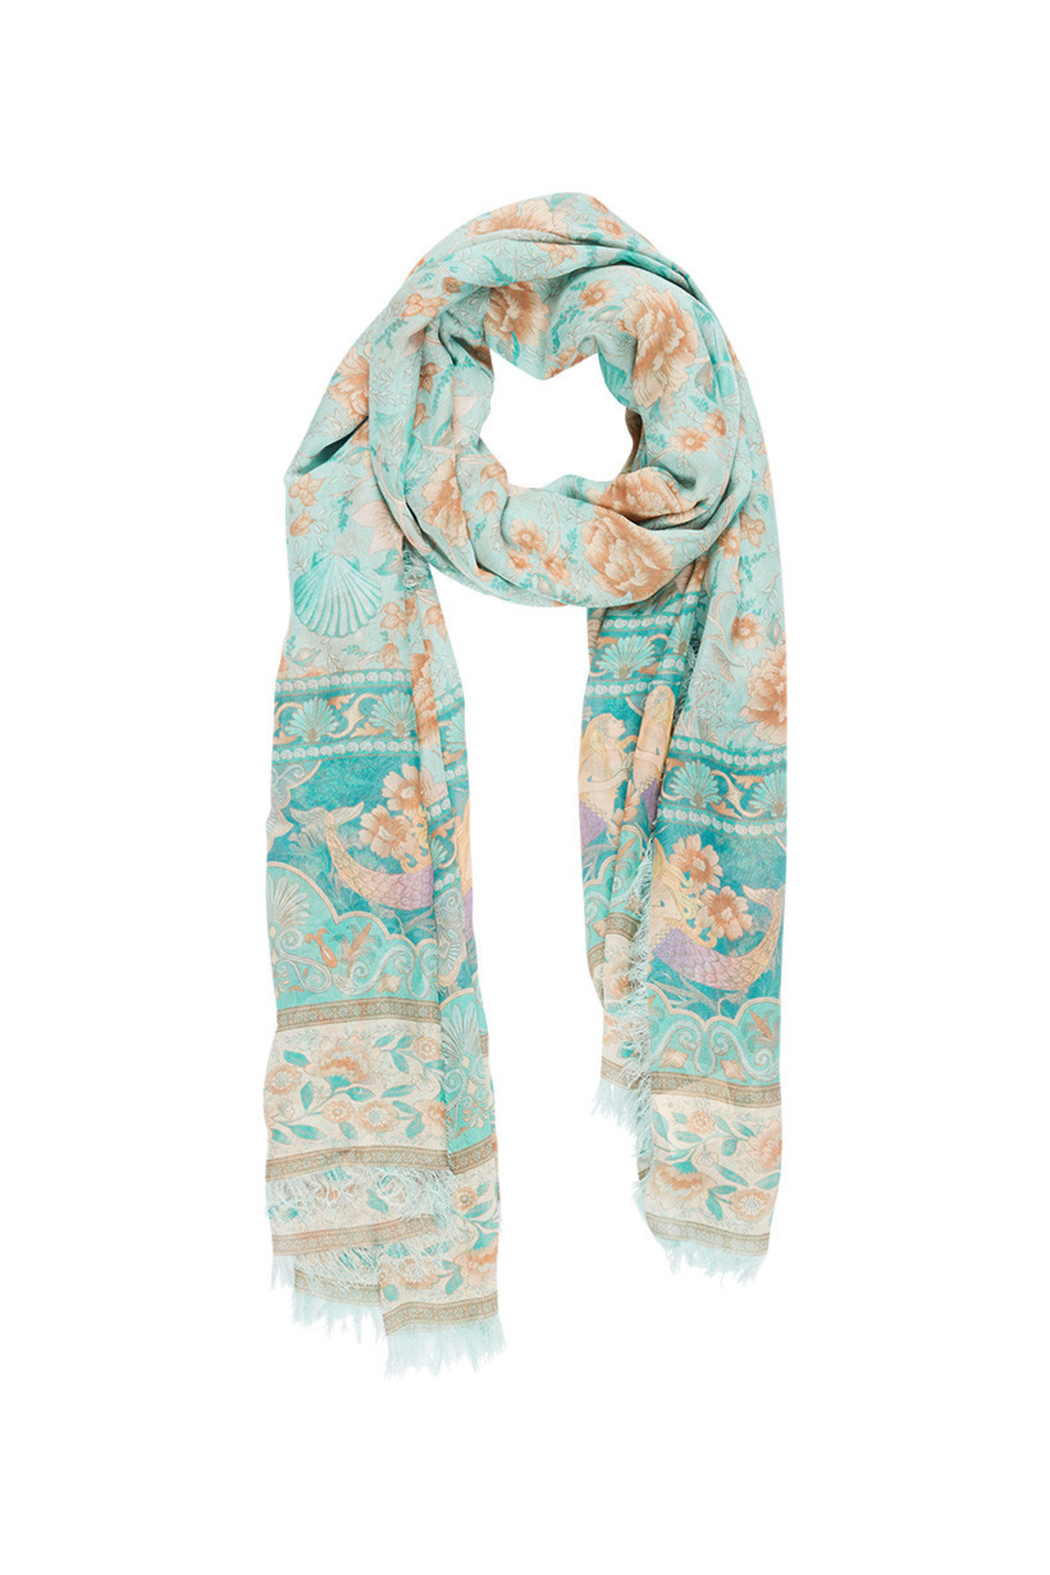 Spell & the Gypsy Collective Seashell Travel Scarf in Seafoam - Front Full Image